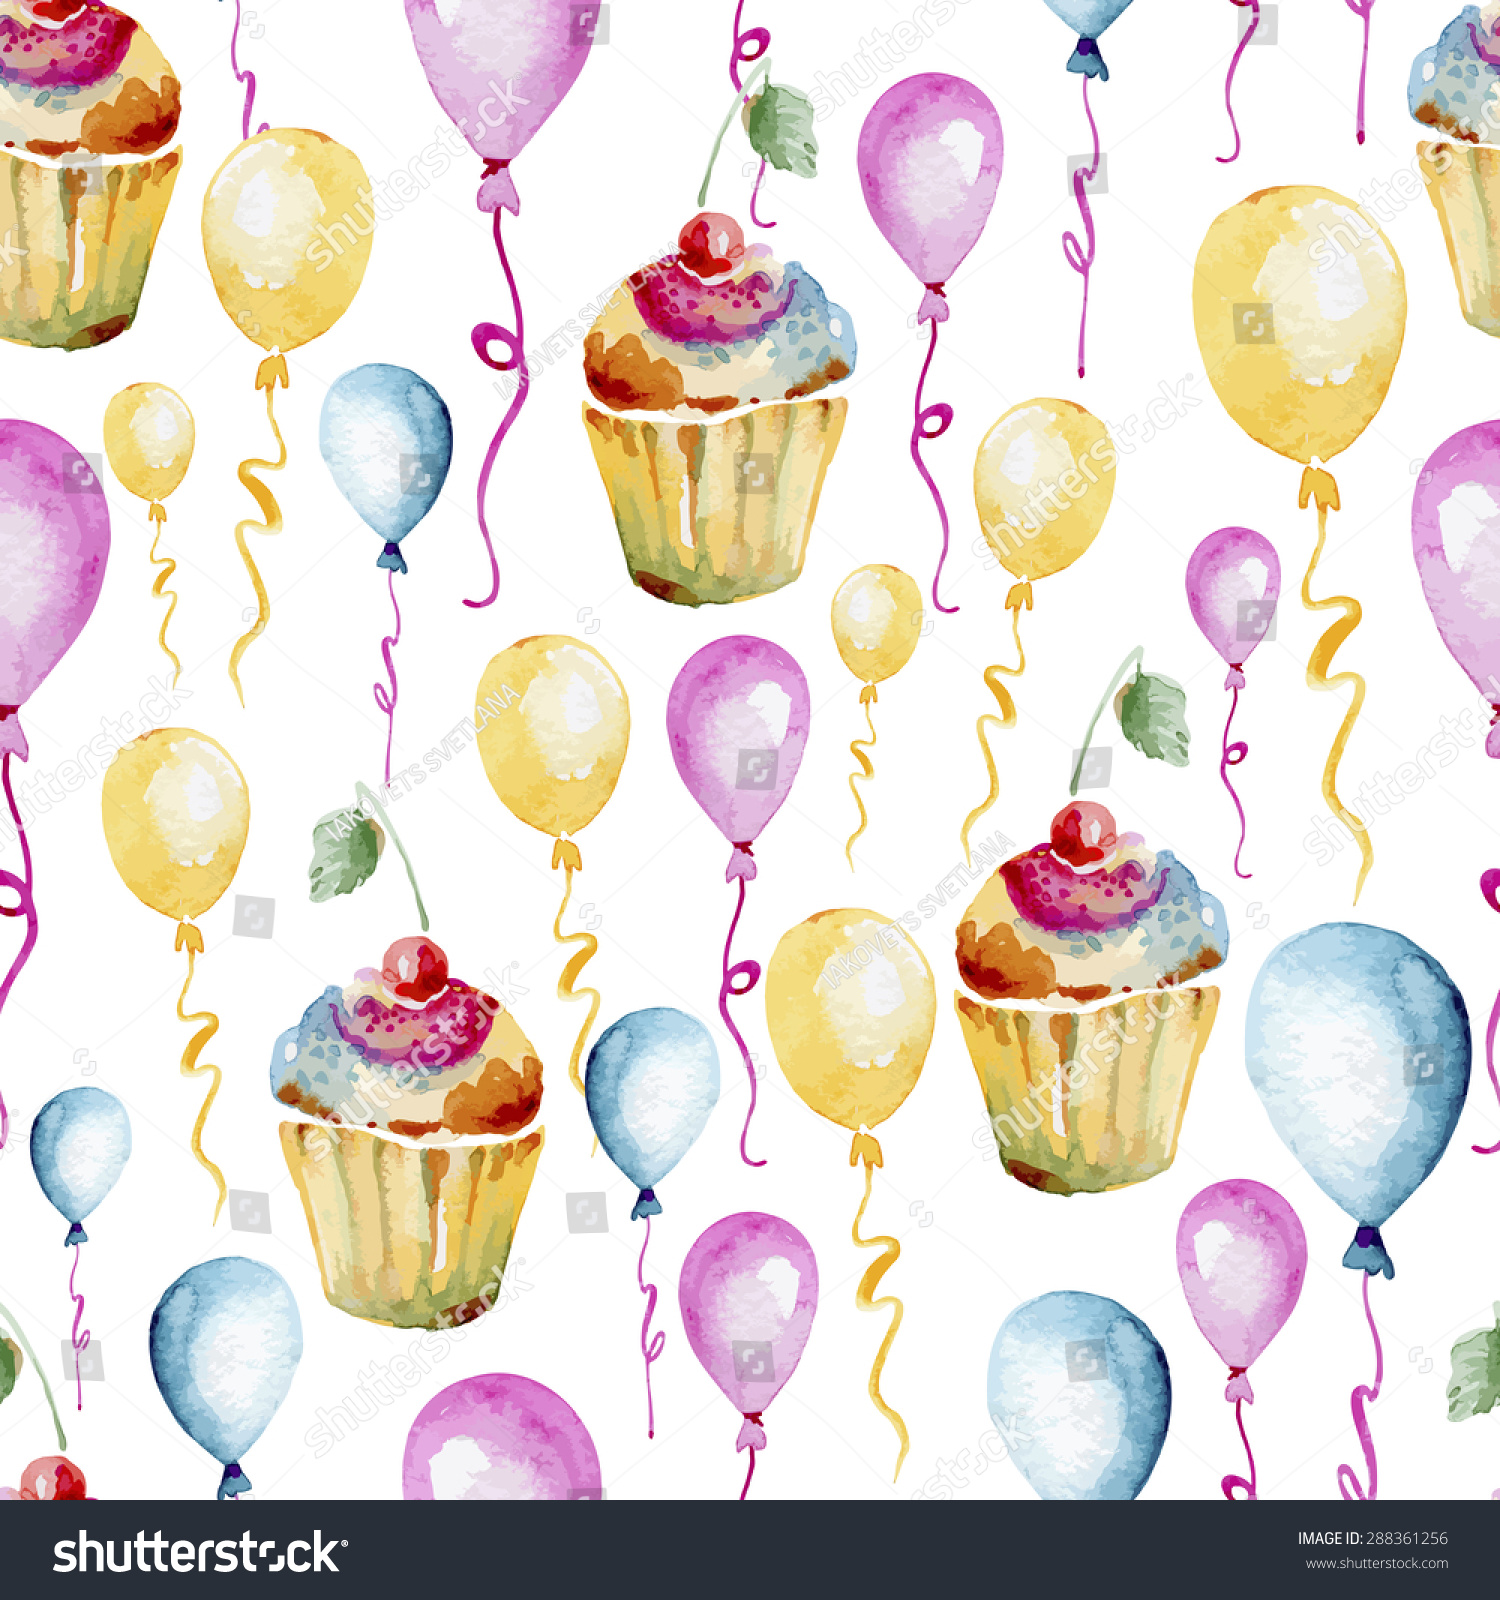 Seamless Pattern Consisting Of Colorful Cupcakes With A